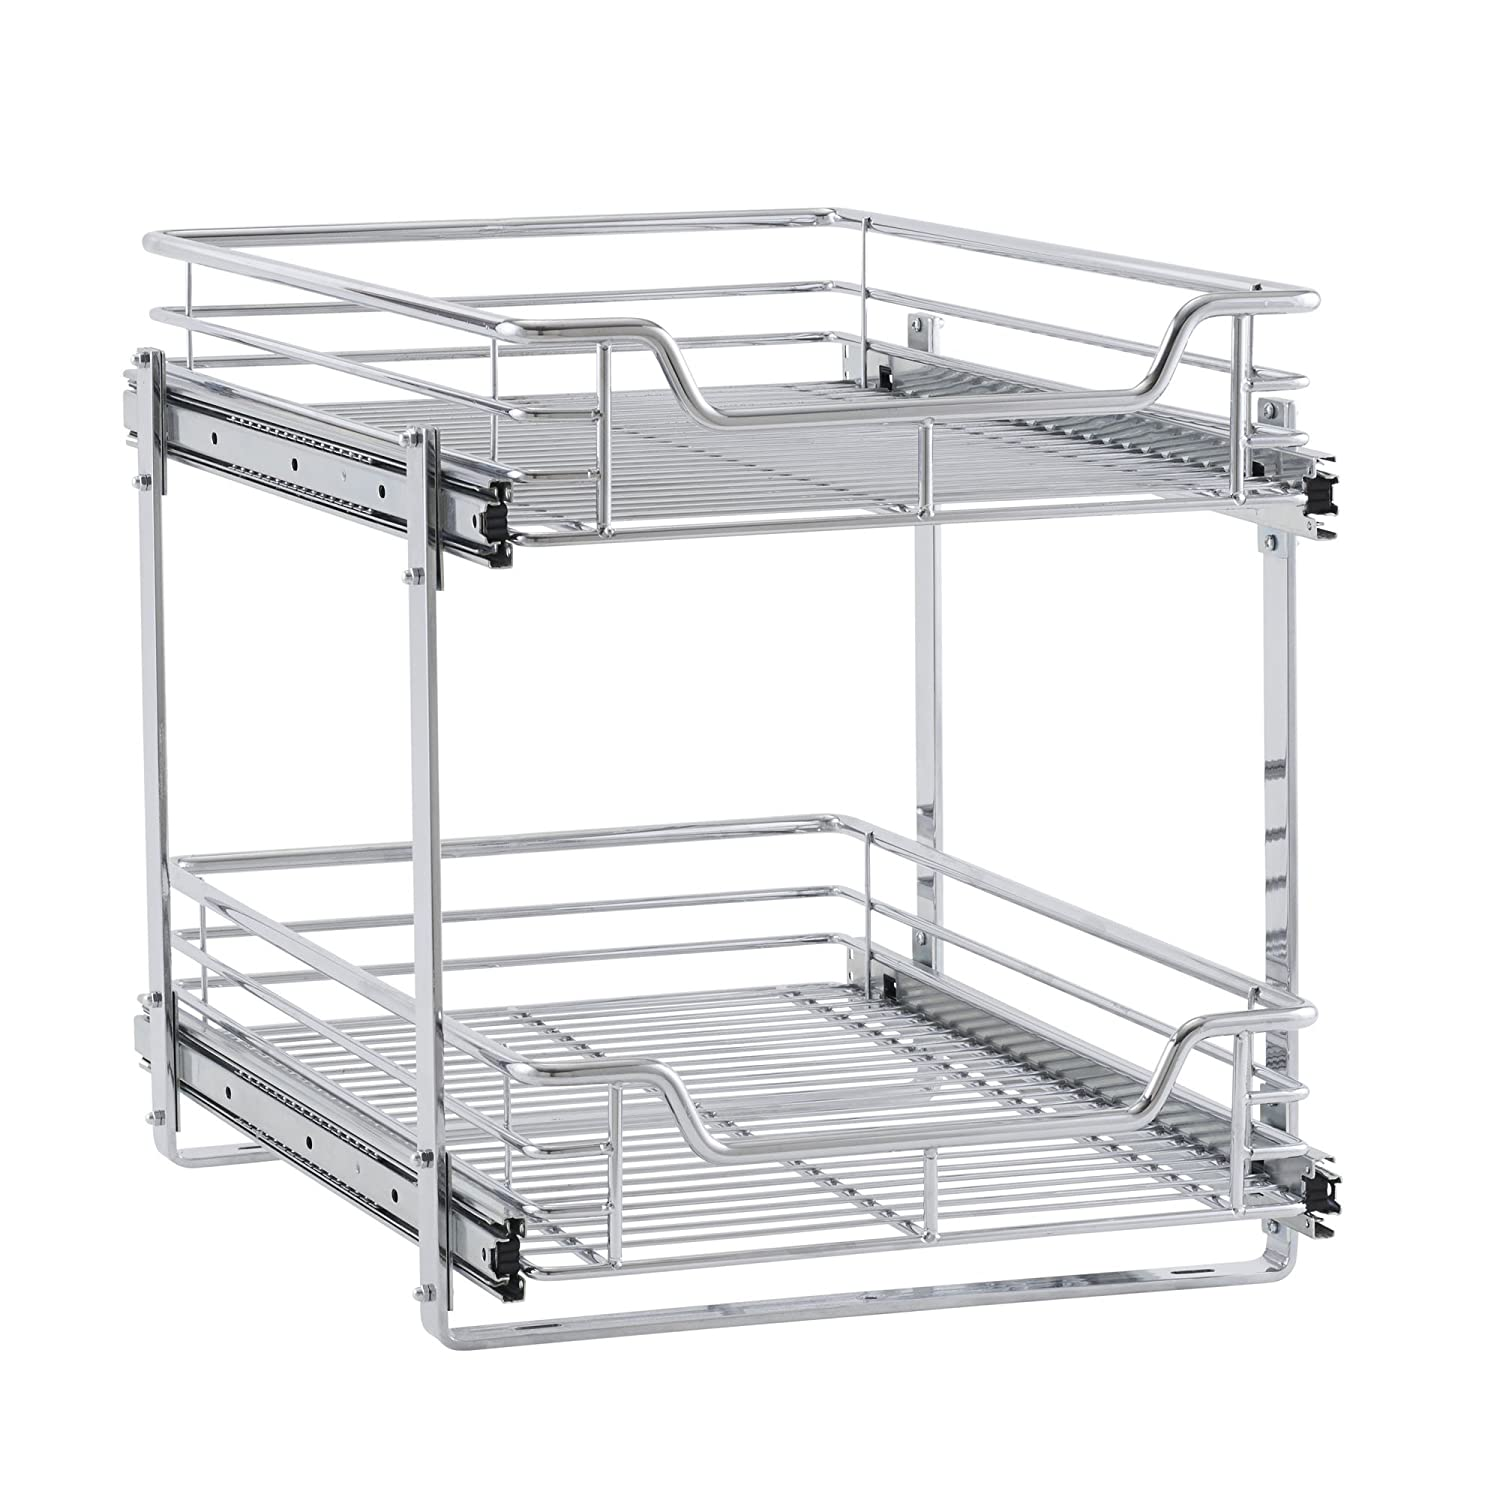 "Household Essentials C21521-1 Glidez Dual 2-Tier Sliding Cabinet Organizer, 14.5"" Wide Chrome"